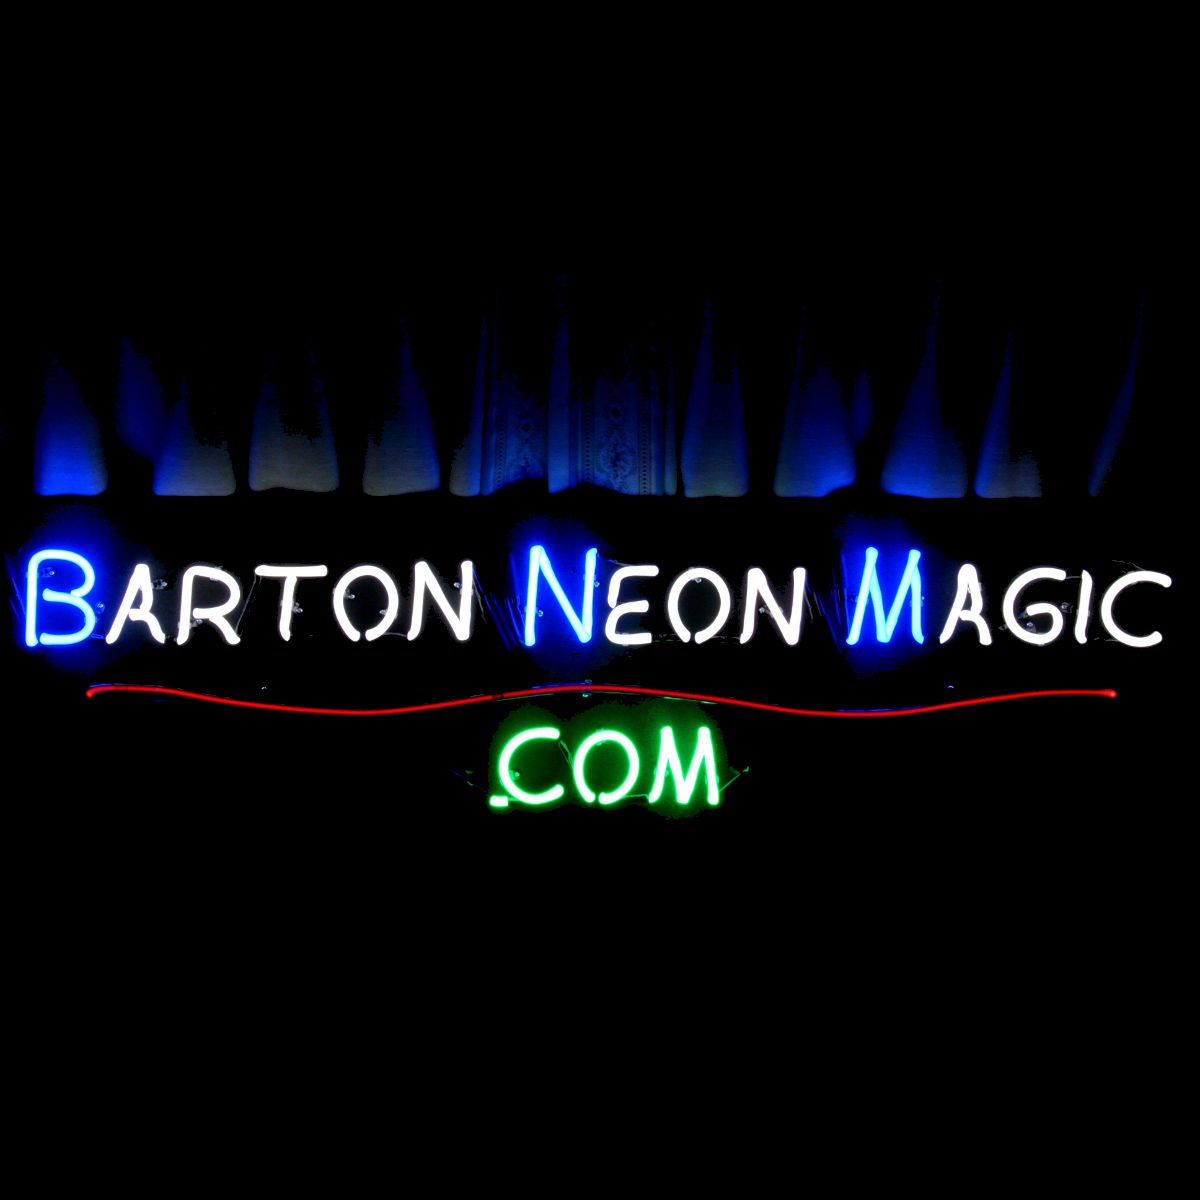 BartonNeonMagic.com - Finest Quality Automotive Neon Signs by John Barton - Internationally Famous Neon Glass Artist